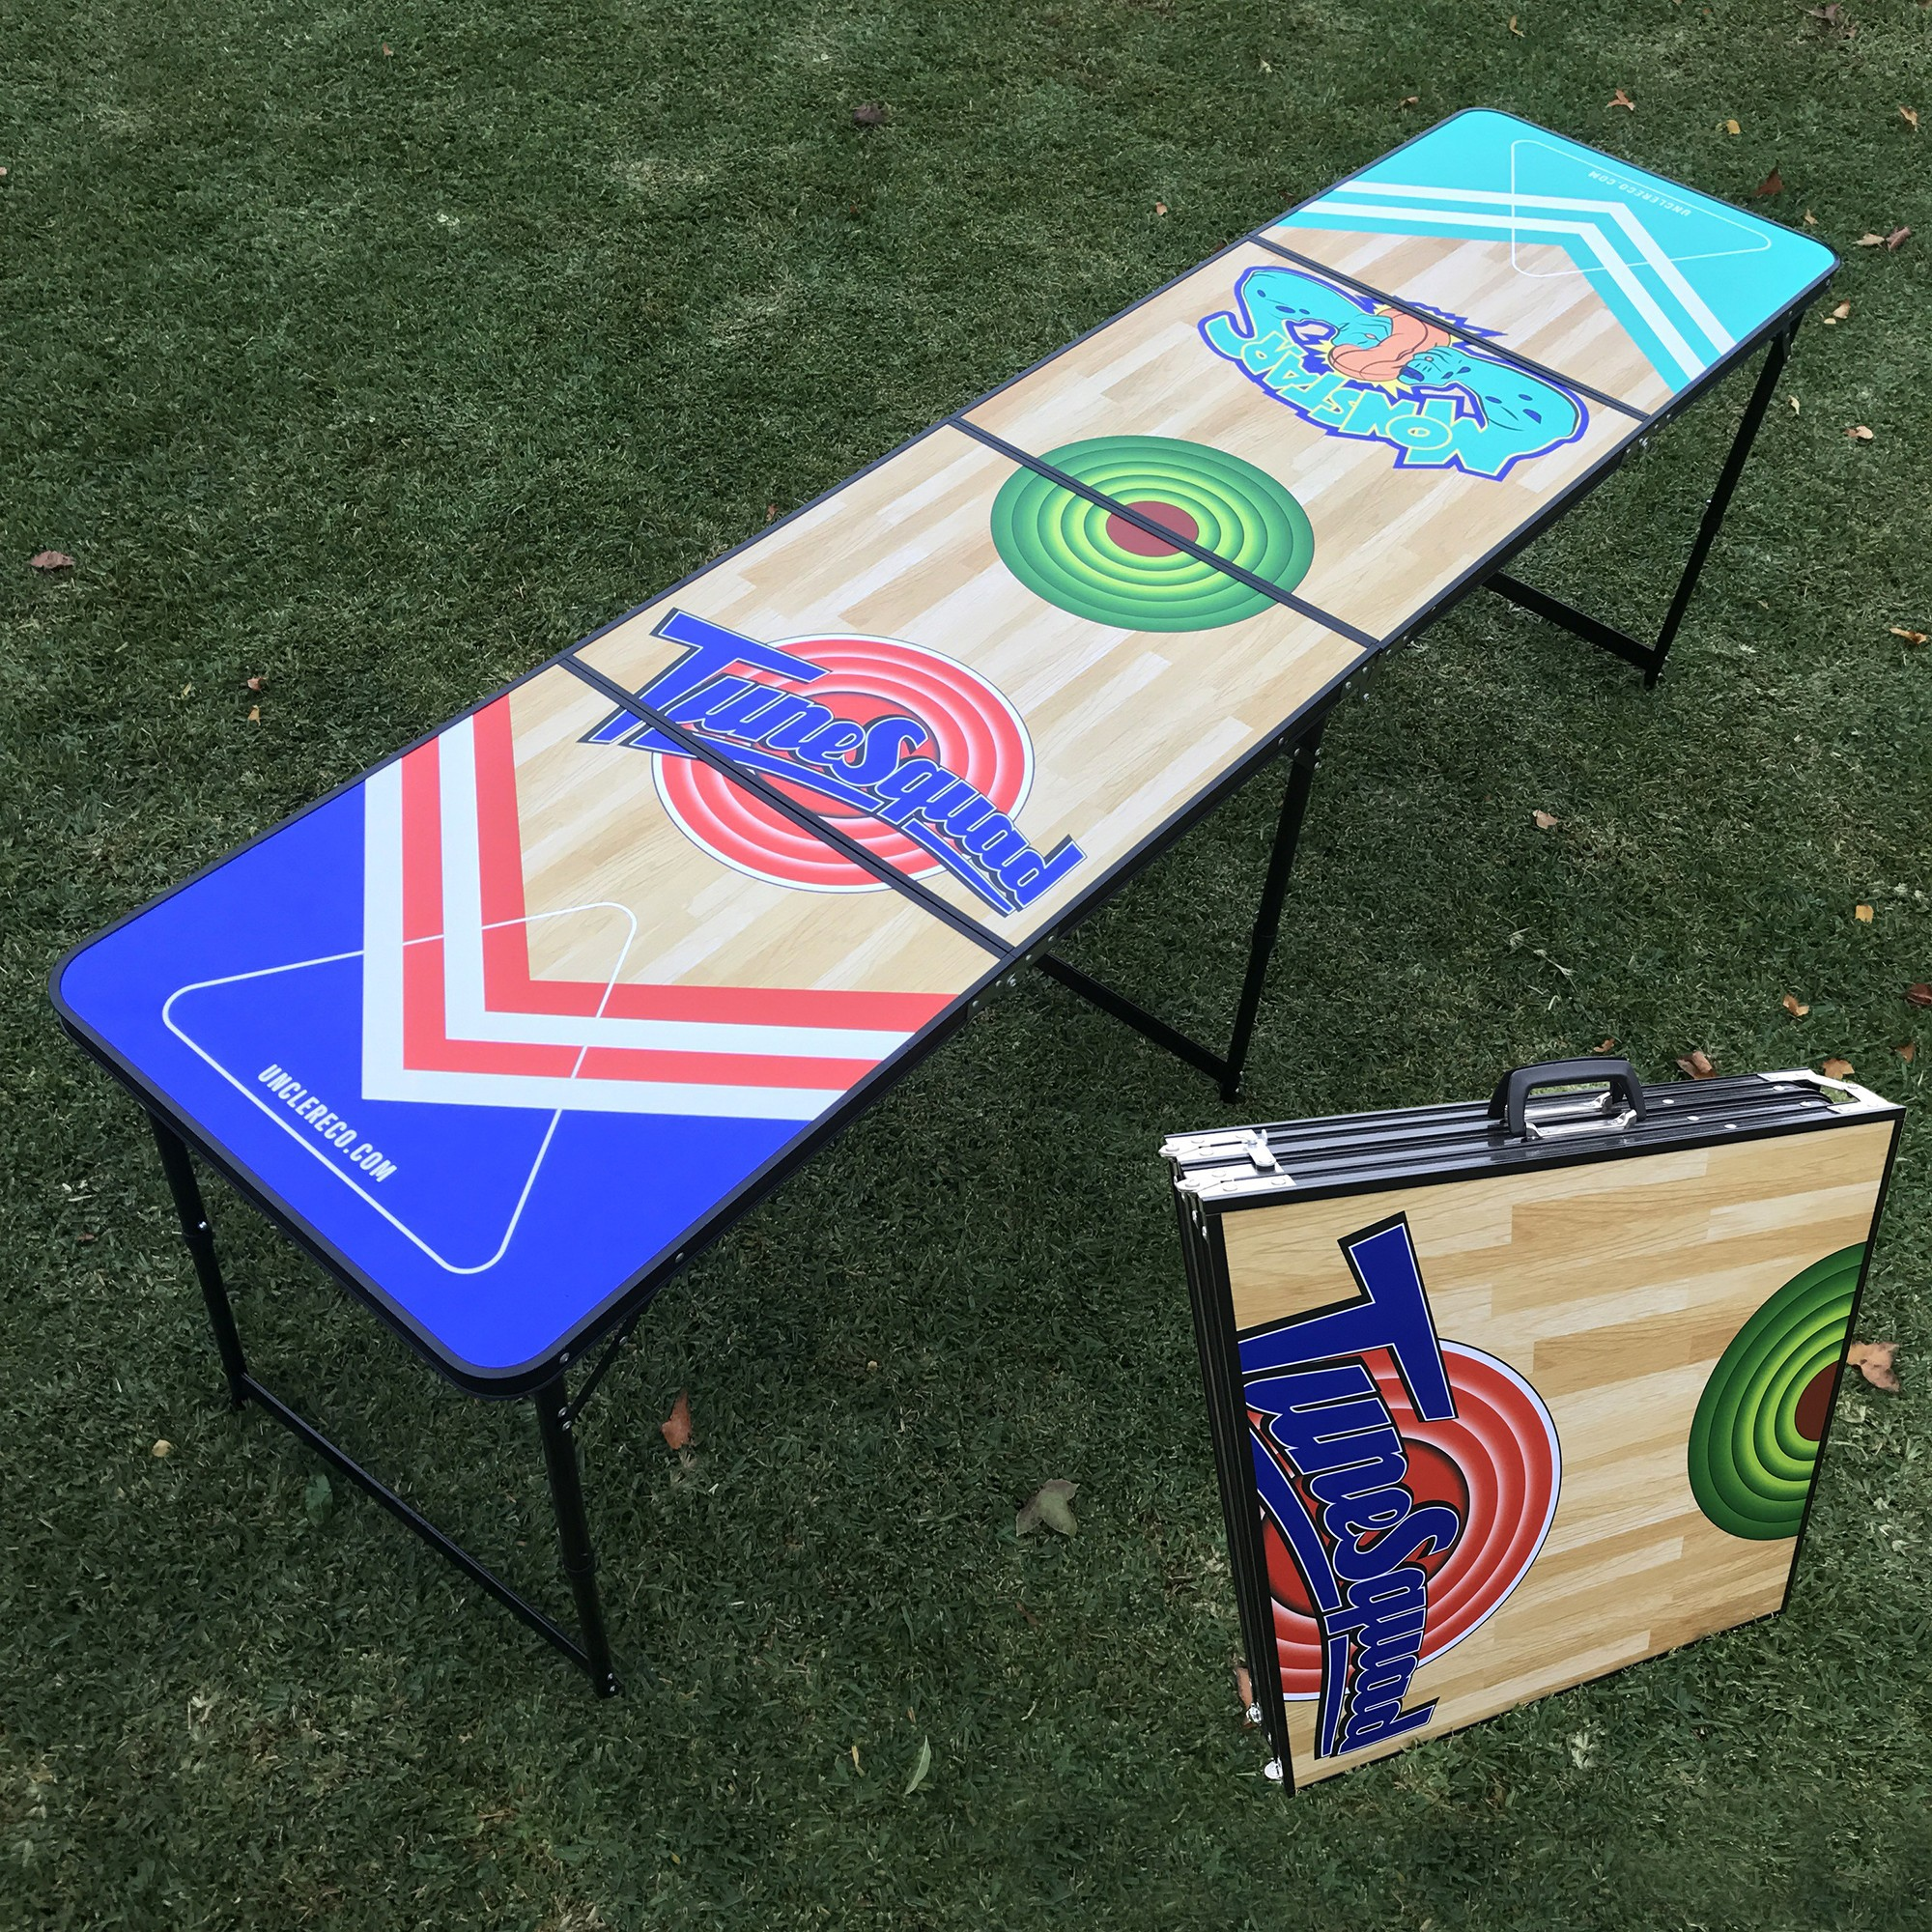 SQUAD BEER PONG TABLE